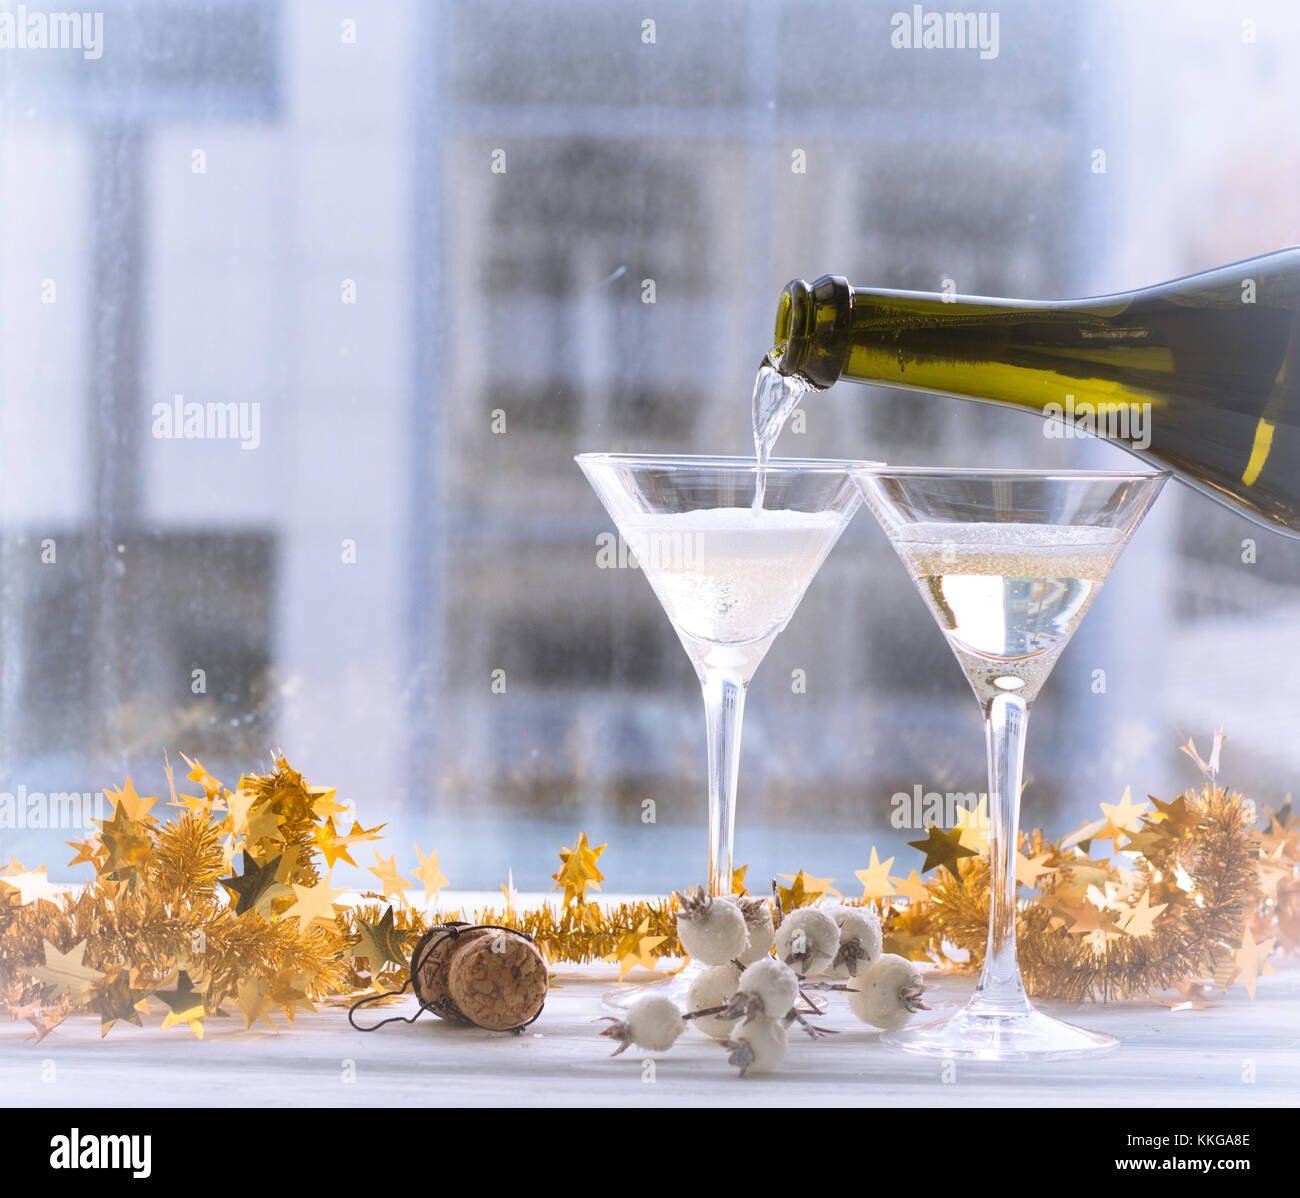 Champagne is being poured into a glass - Stock Image